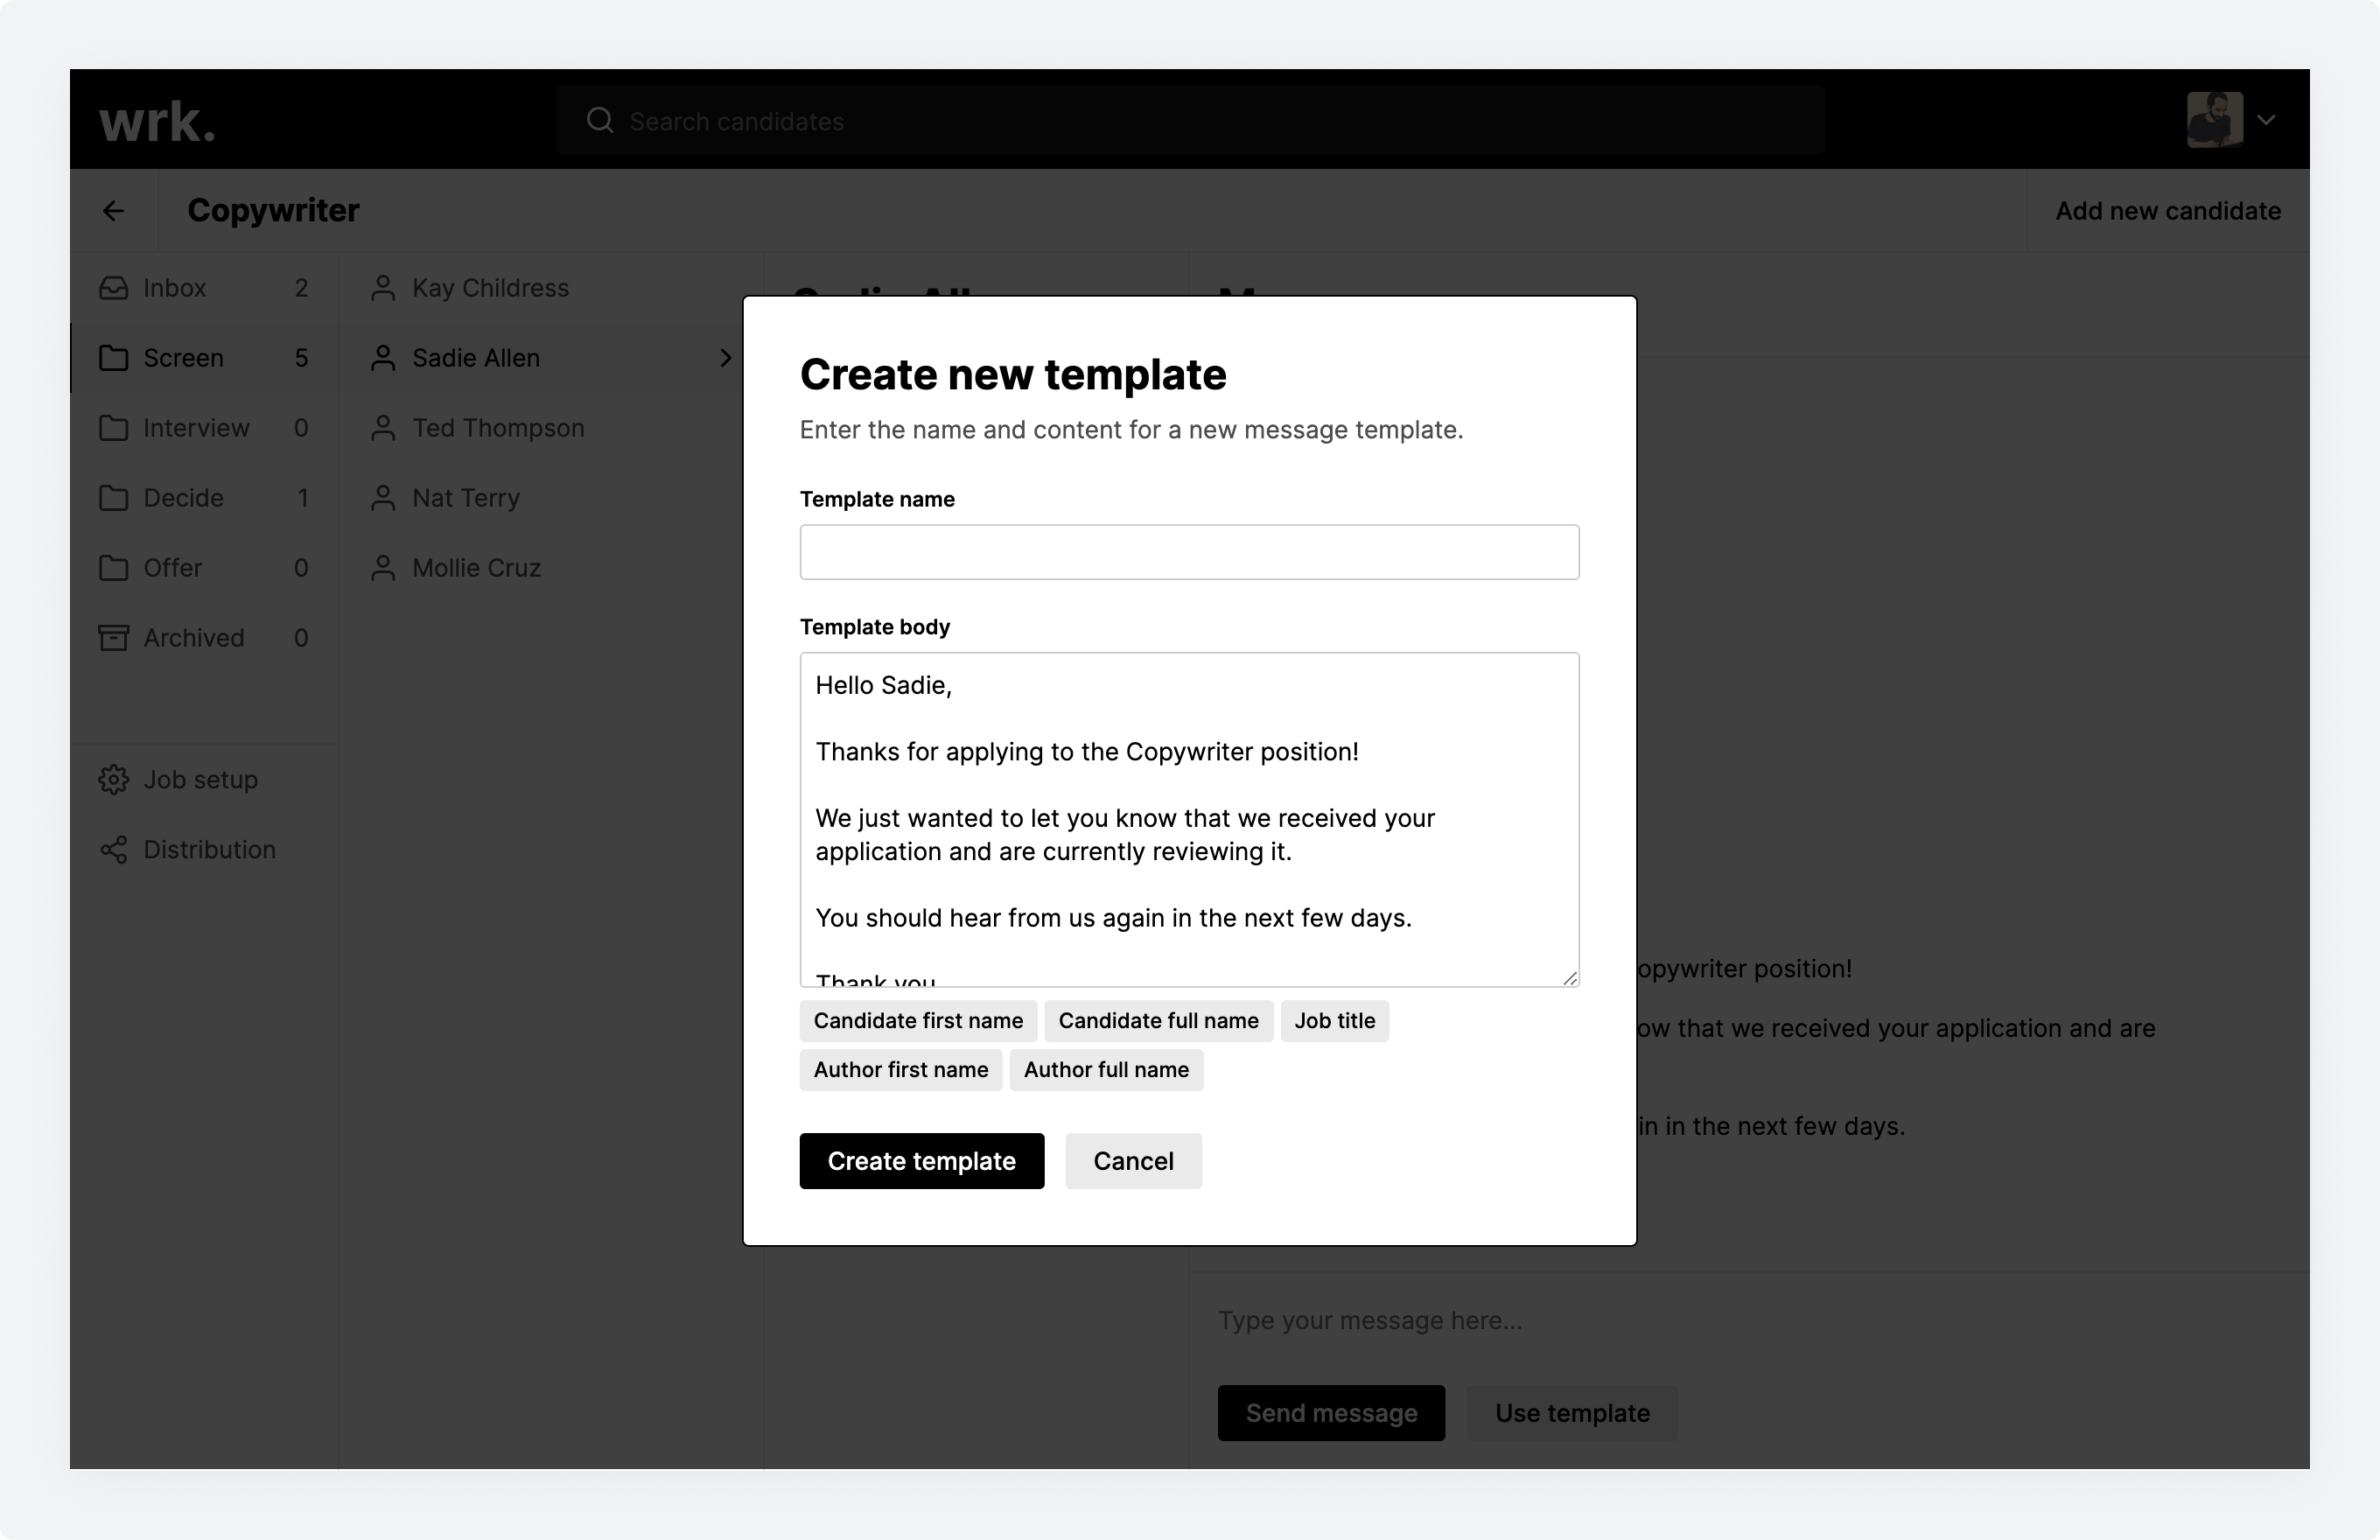 The Create new template window displayed from the Messages screen in Wrk